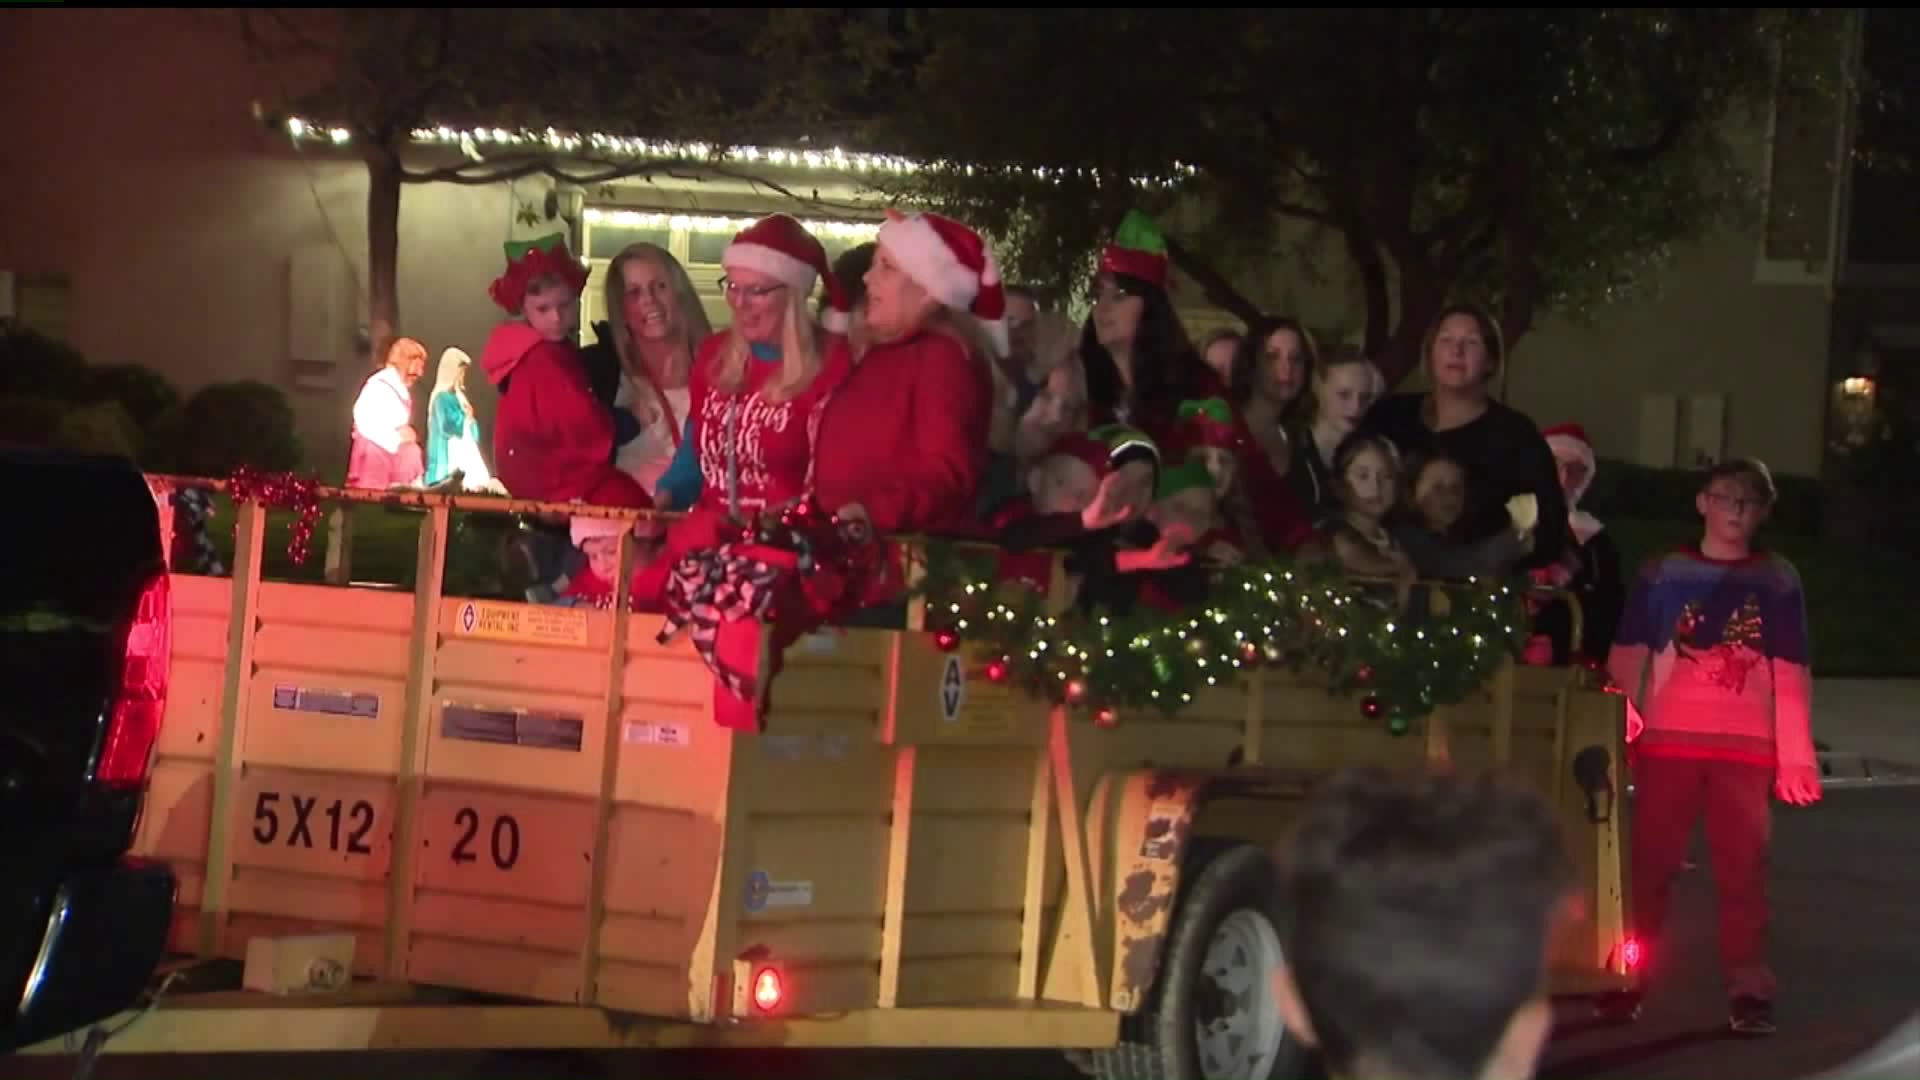 Loved ones of Saugus High School shooting victim Gracie Anne Muehlberger gather to sing Christmas carols and collect food for the needy in her honor in Saugus on Dec. 12, 2019. (Credit: KTLA)